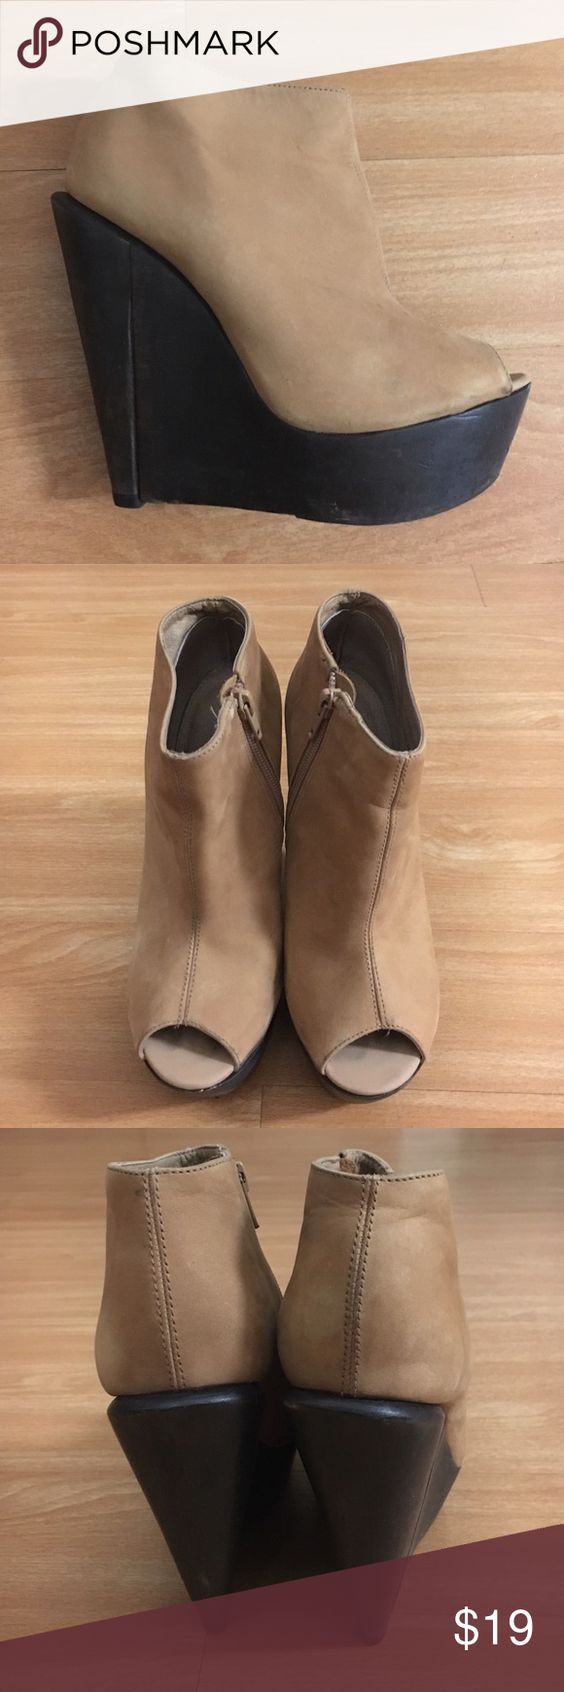 TOPSHOP Peep-toe Booties -size US 7.5/UK 5 /EUR 38 Fashionable ankle peep-toe booties by TOPSHOP. Dark wood 5 inch wedge, camel suede. Runs a bit small, I'm a true 7 and fits like a glove. Pre-owned, subtle signs of wear. Topshop Shoes Ankle Boots & Booties